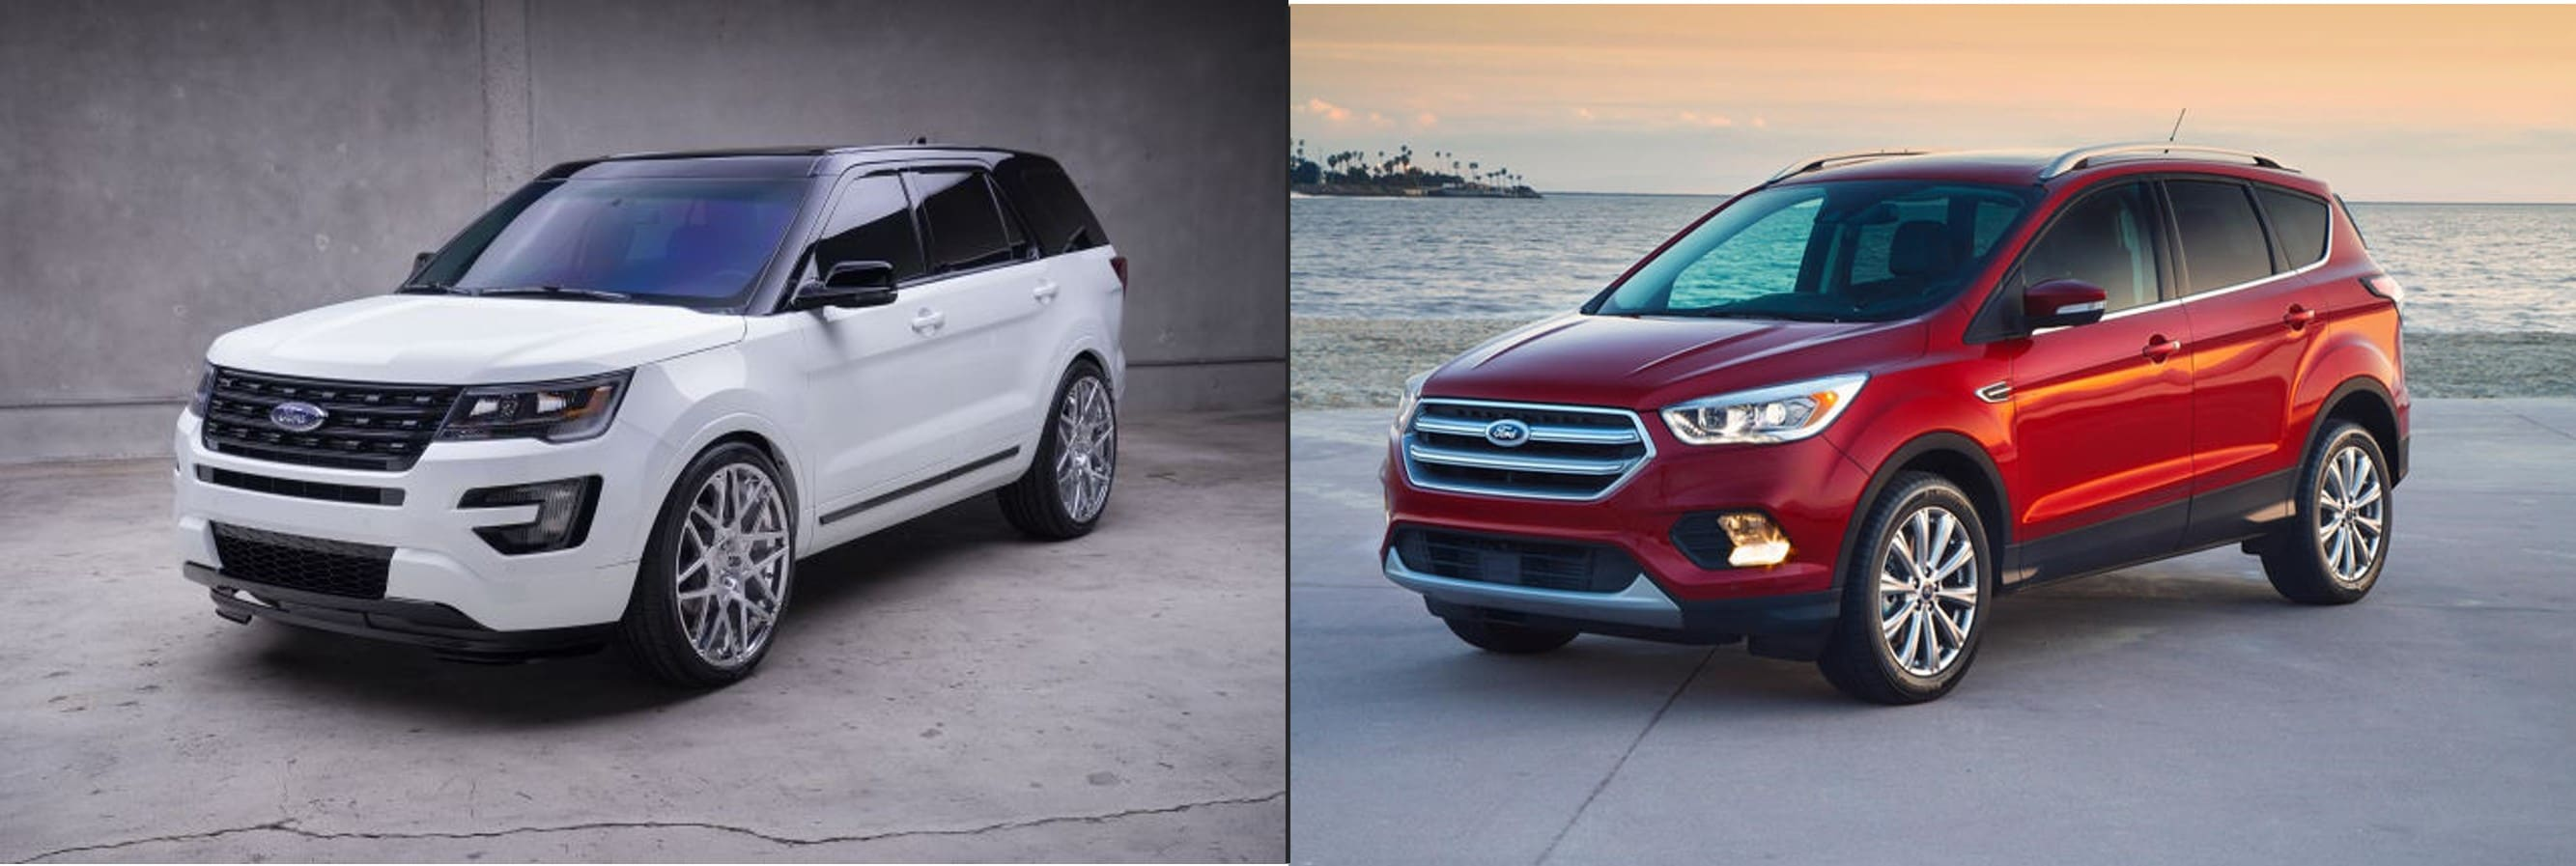 A 2018 white Ford Explorer next to a red 2018 Ford Escape